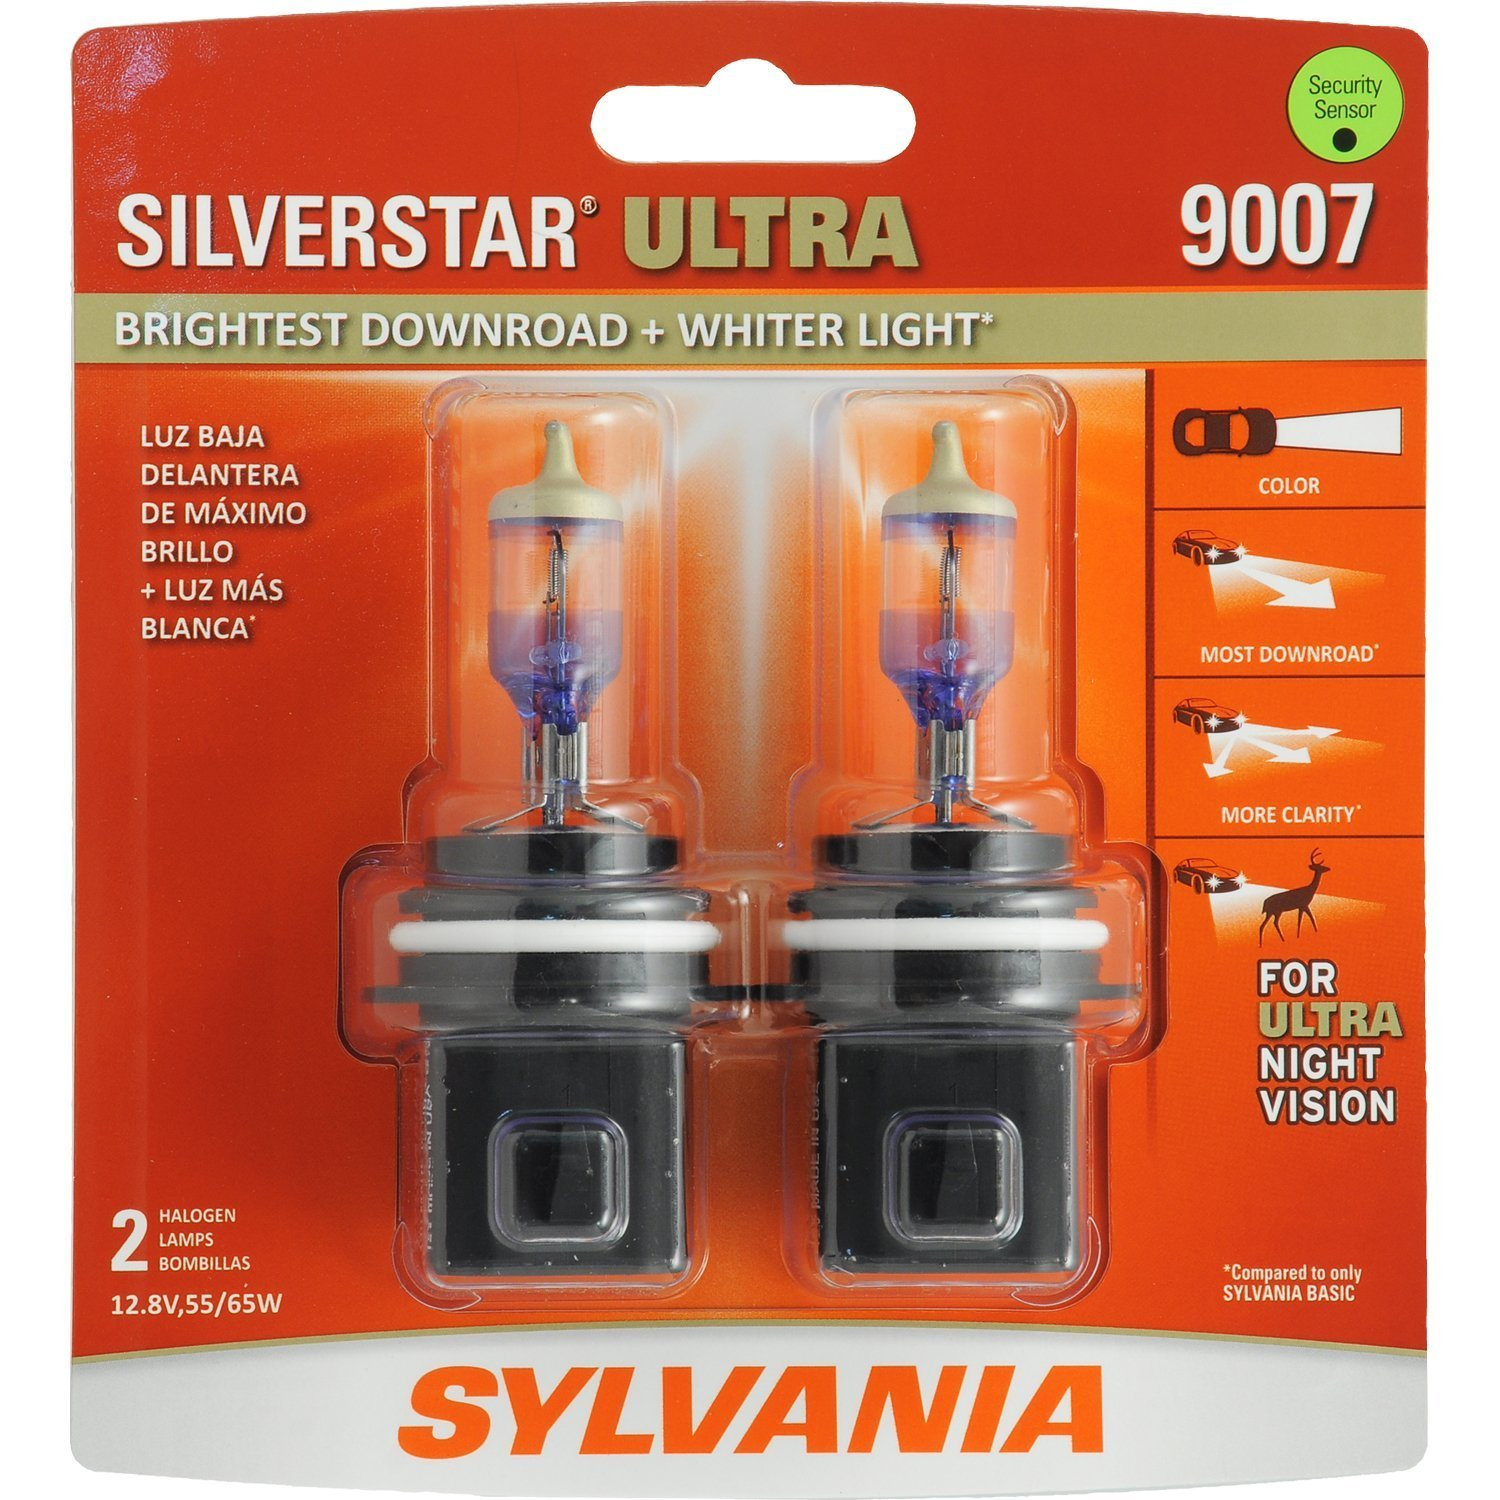 High Performance Halogen Headlight Bulb Tri-Band Technology Contains 2 Bulbs H11 SilverStar Ultra Brightest Downroad with Whiter Light SYLVANIA Low Beam and Fog Replacement Bulb High Beam